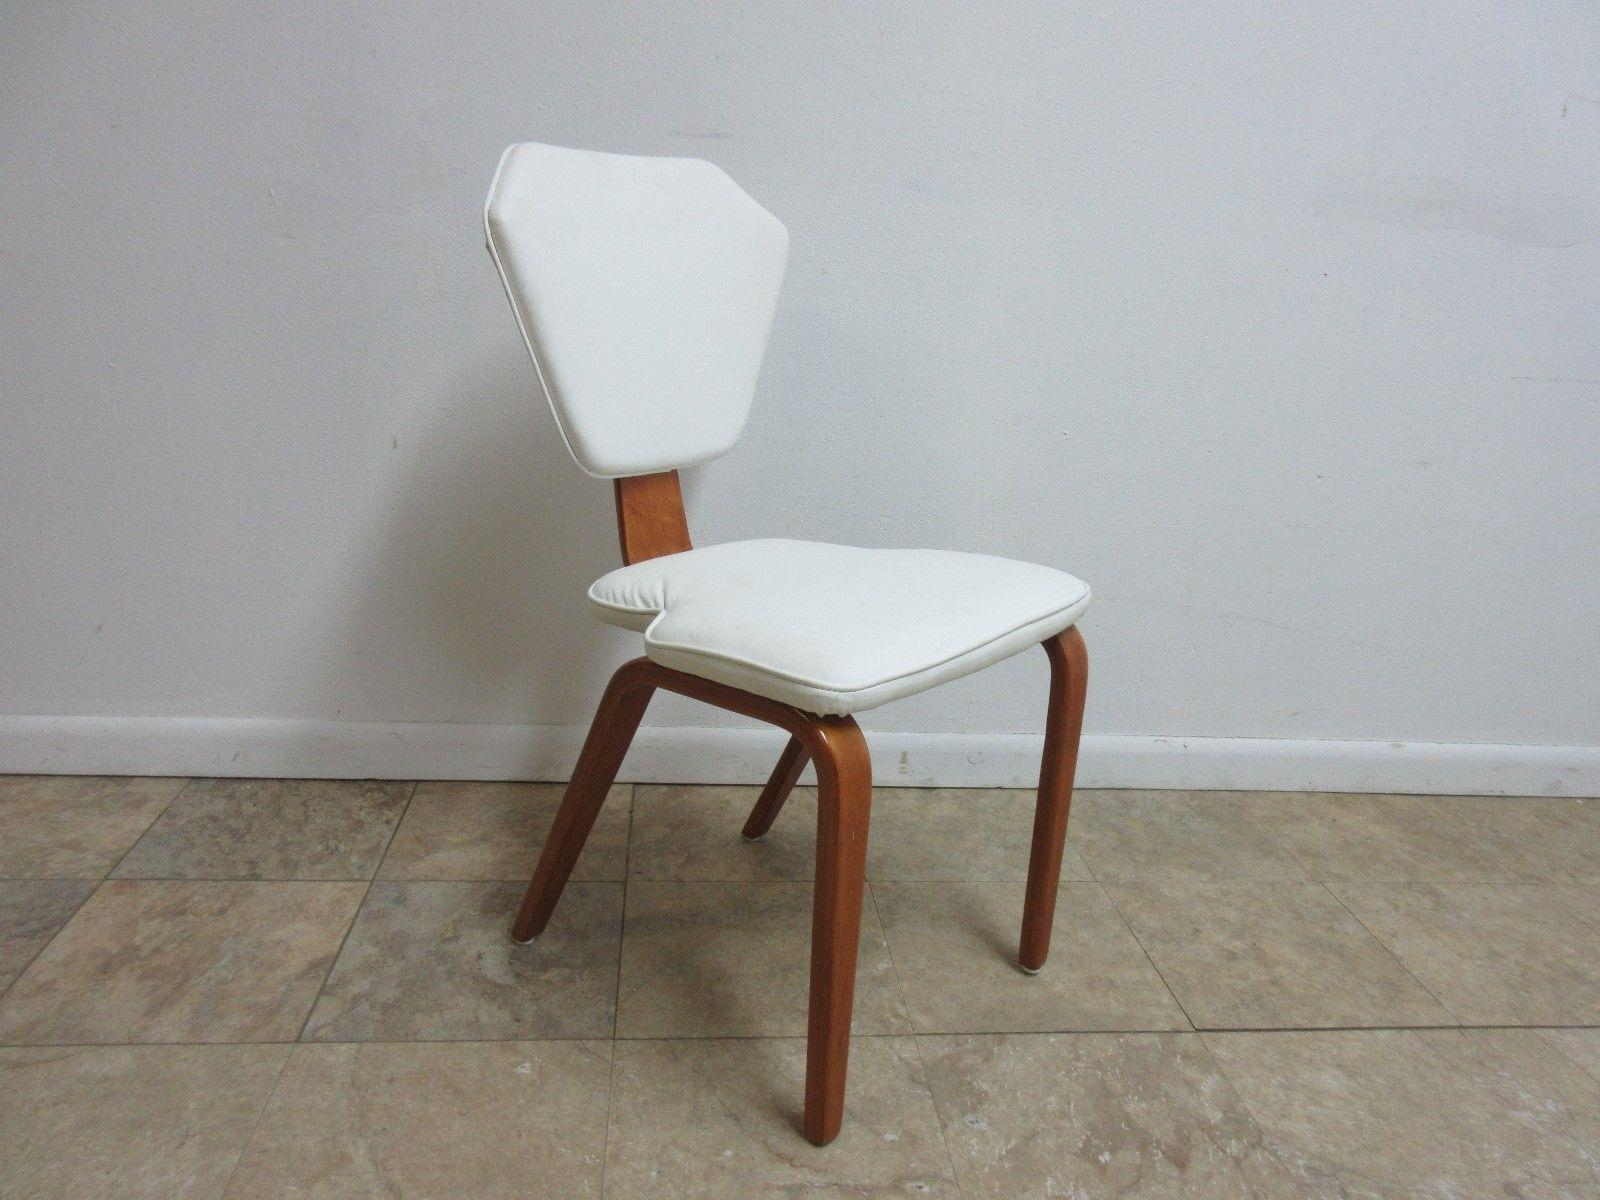 ... Dining Room Chair For Sale. Measurements ( L X W X H)20 X 16 X 33.5 Seat  Height 17.25 Great Shape. Tight